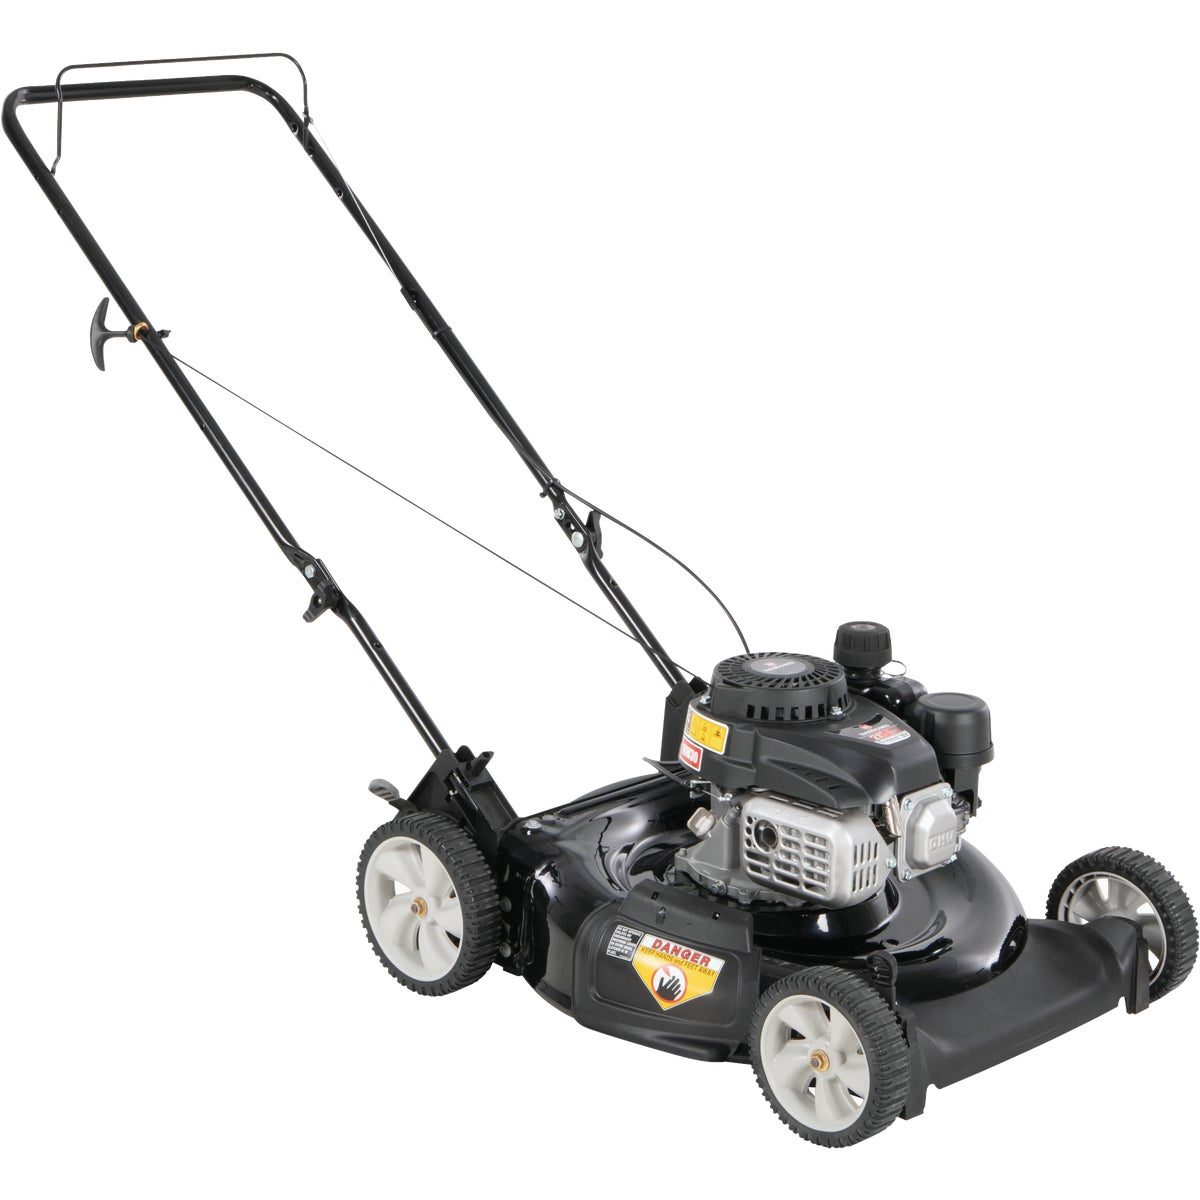 "21"" 2-N-1 HI WHEEL MOWER - 11A-B06R700 by M T D Products"